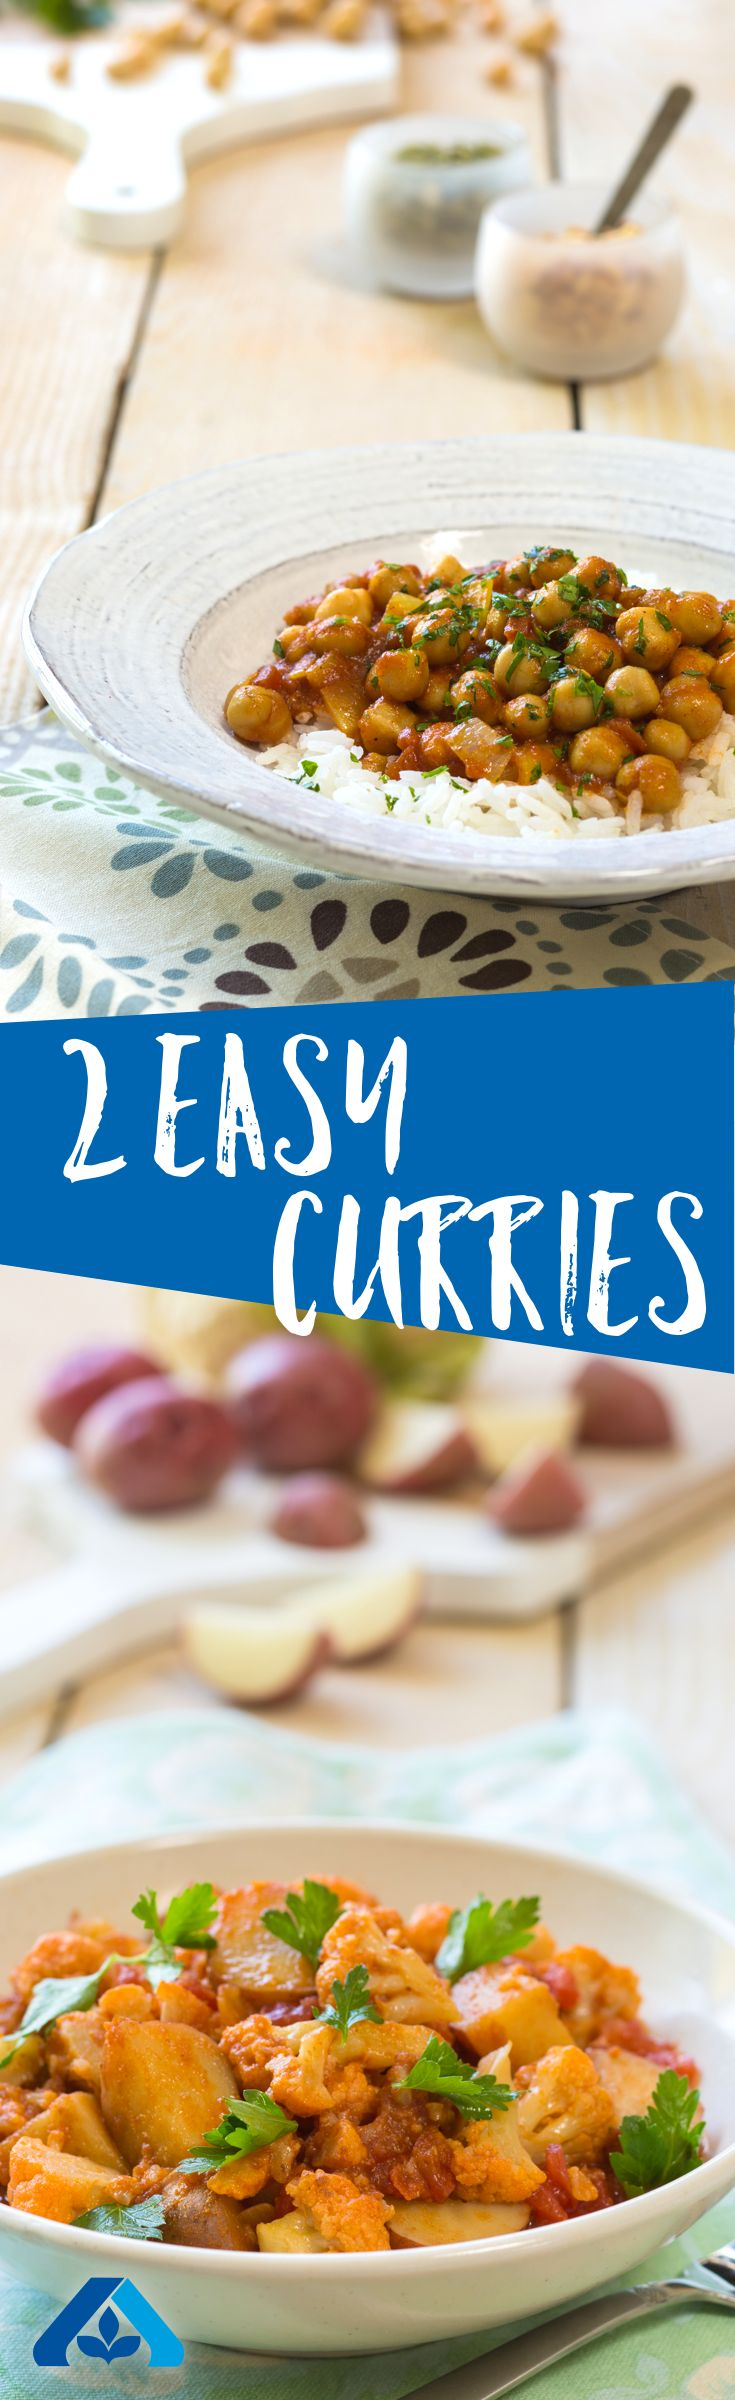 Curry in a hurry! These two super simple curry recipes will take less than 30 minutes each to make and are packed with full flavors and valuable nutrients.